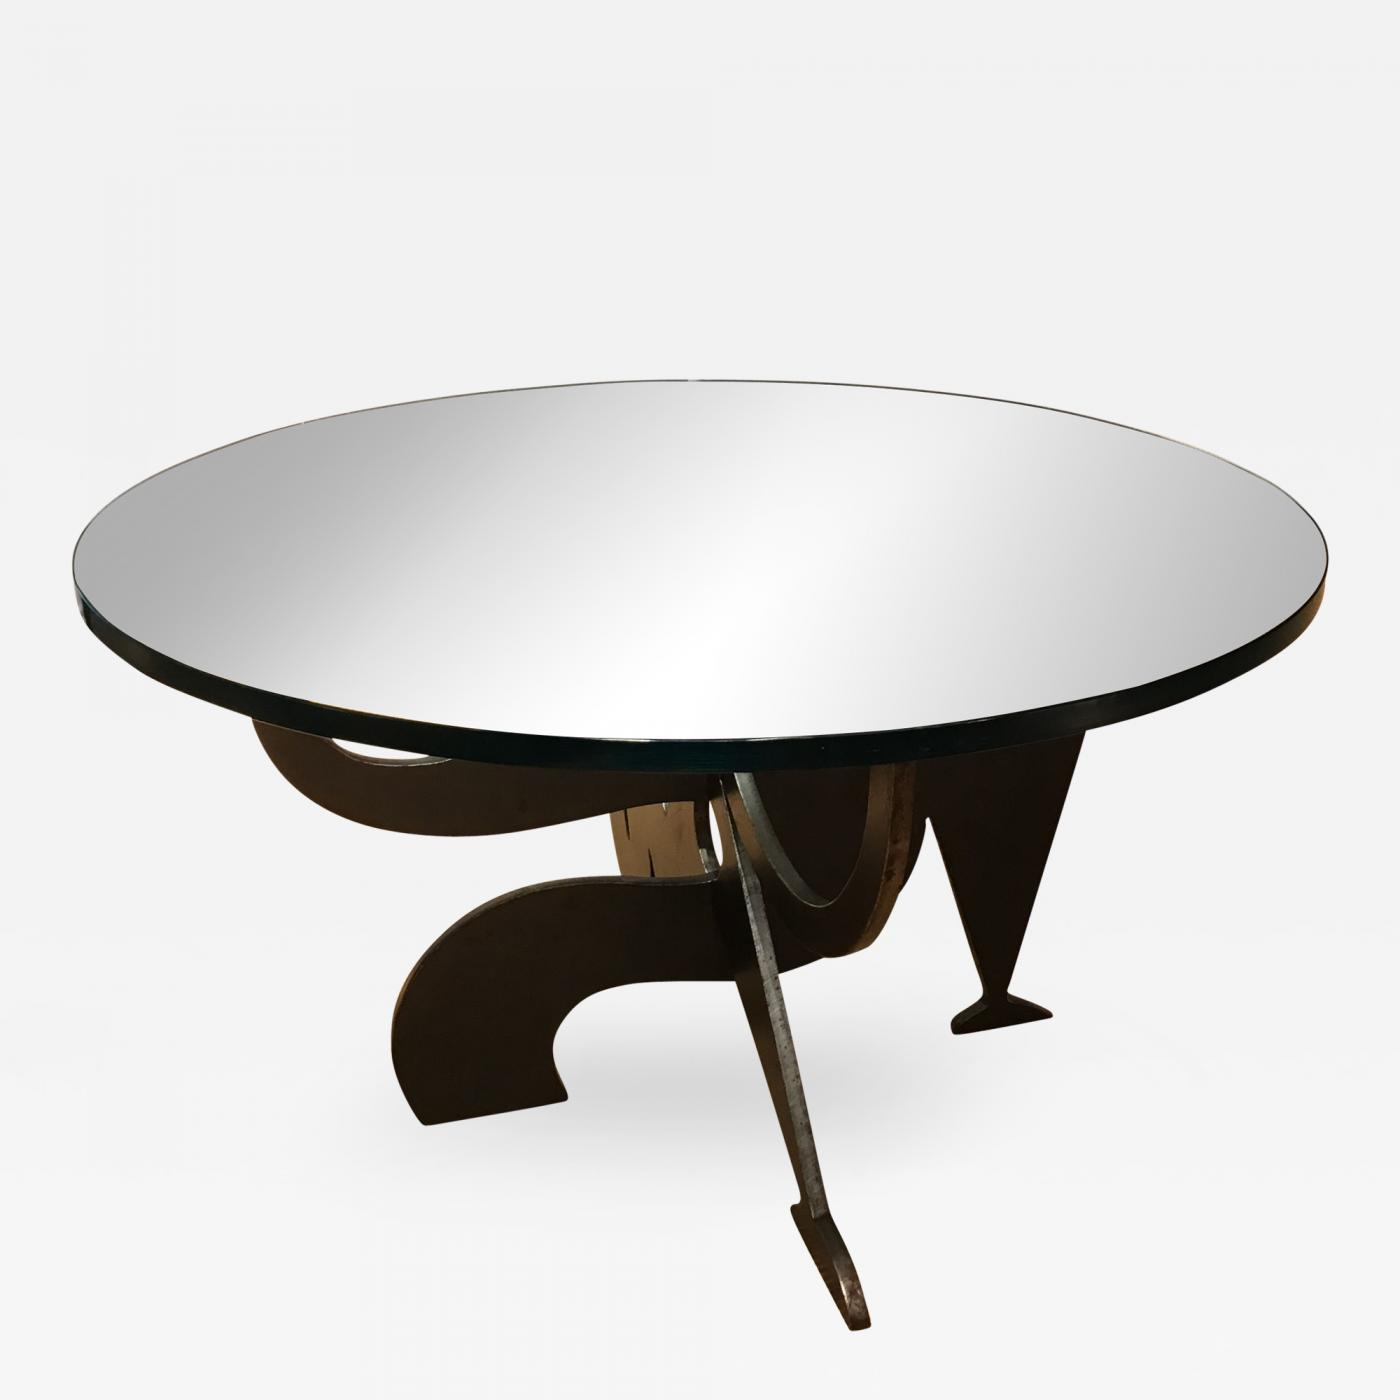 Pucci de rossi bronze coffee table by puccie de rossi listings furniture tables coffee tables geotapseo Image collections